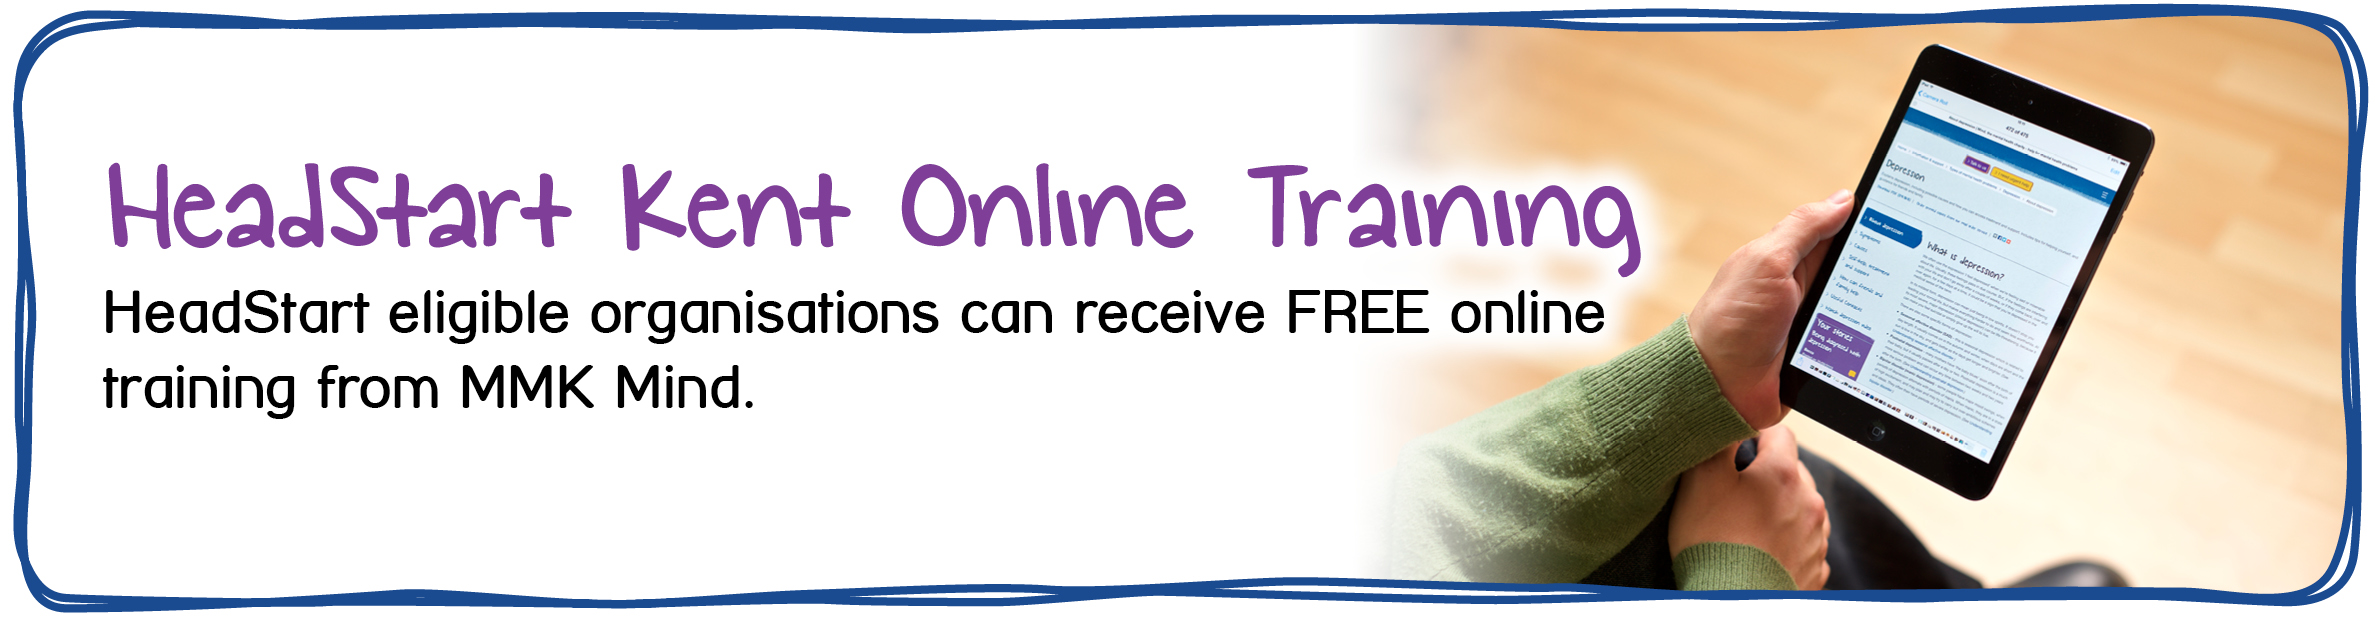 HeadStart Kent Online Training - HeadStart Eligible organisations can receive FREE online training from MMK Mind